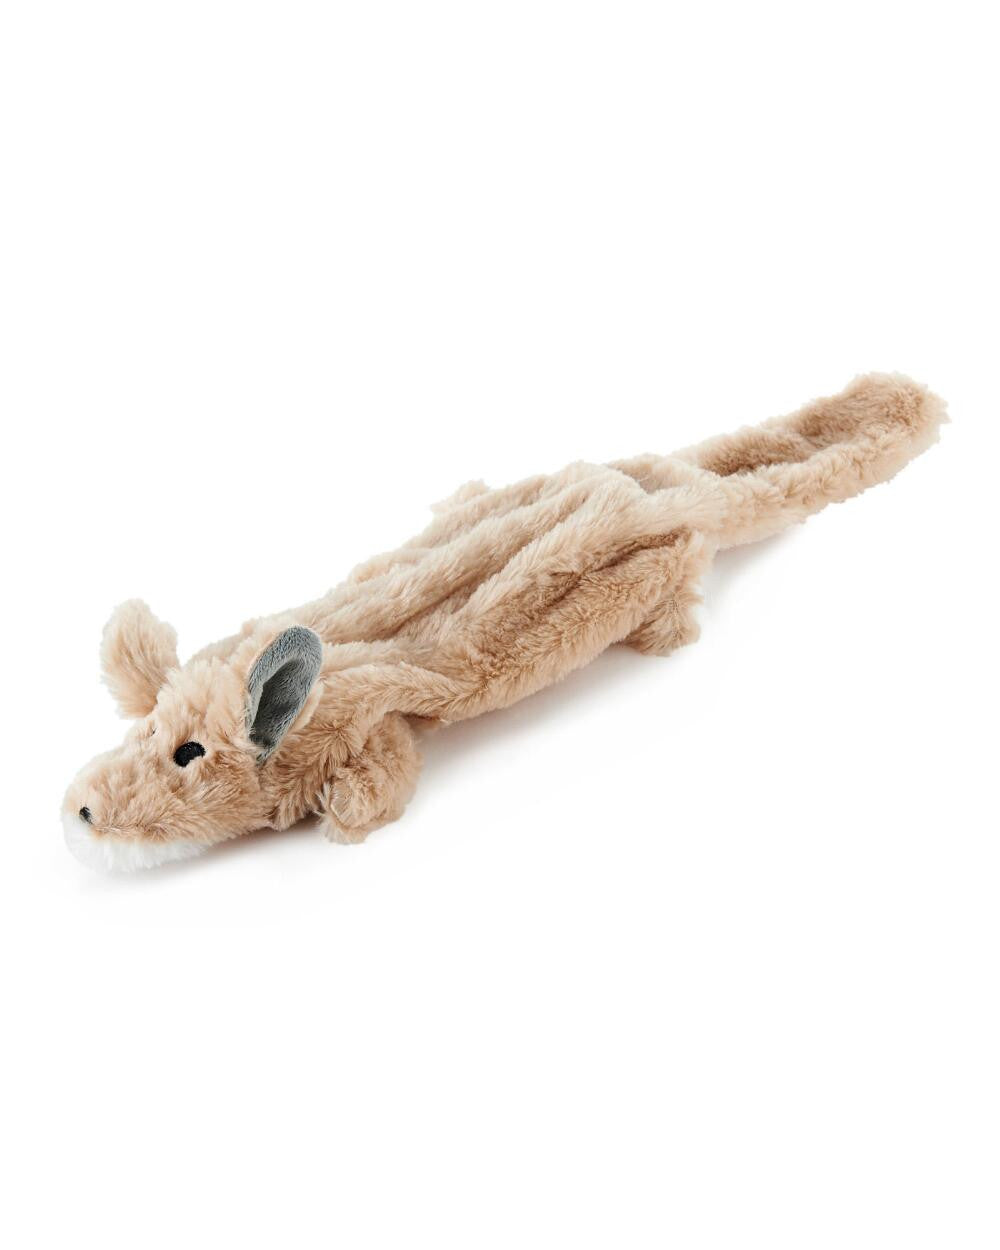 Aussie Naturals- Kangaroo- Rope Toy Inside-SALE